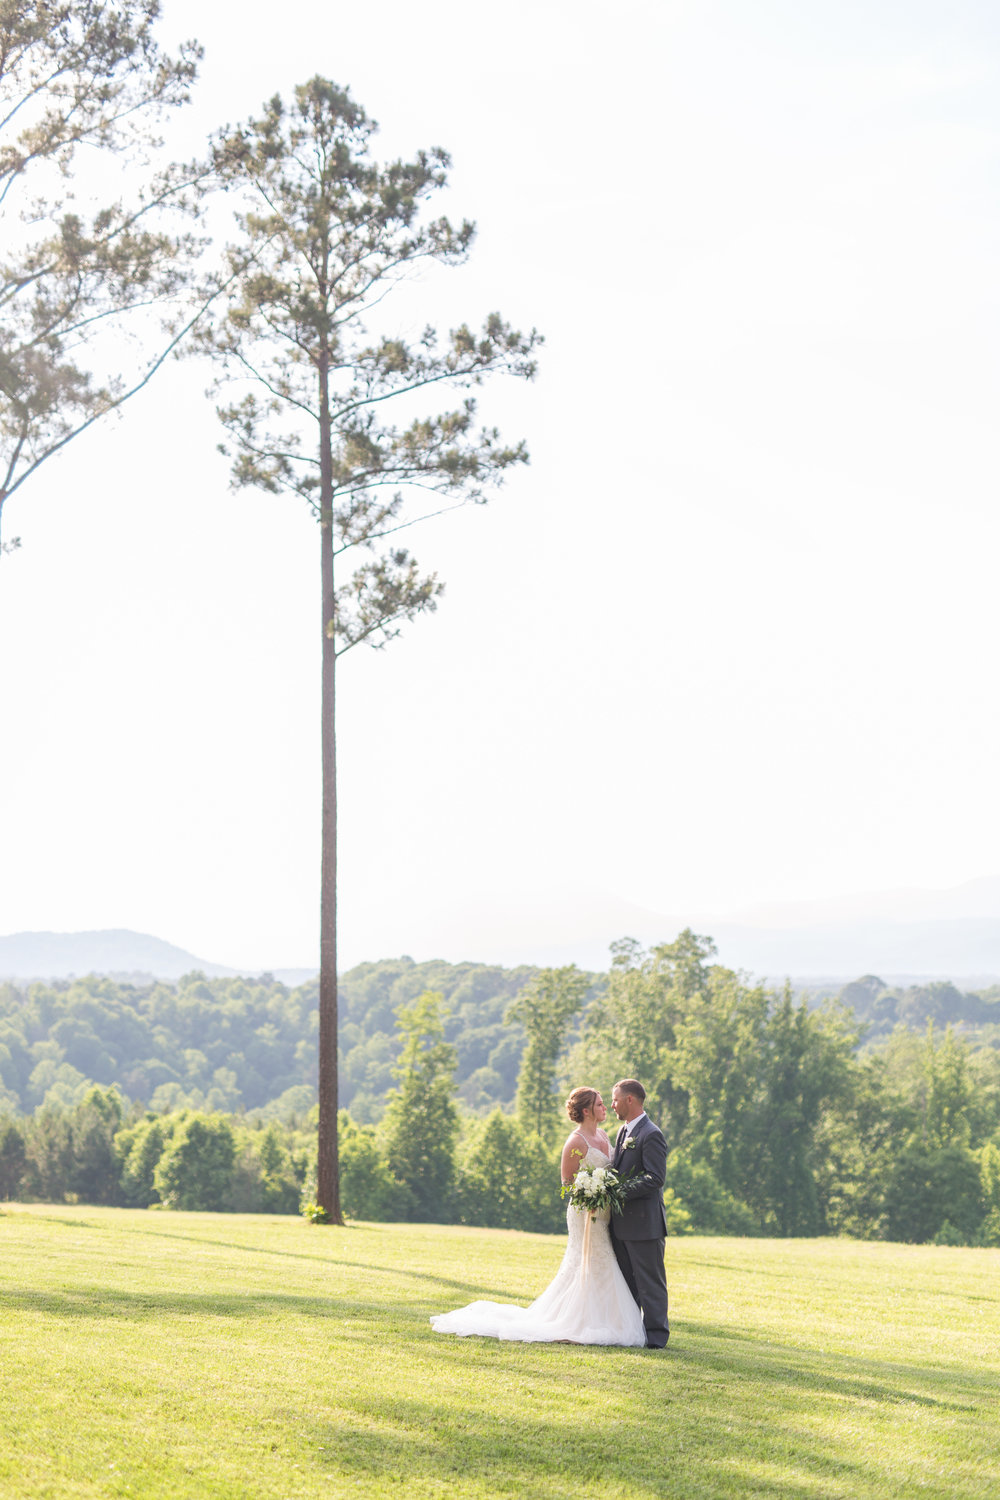 Lynchburg Virginia Wedding Photographer || Central Virginia Wedding Photos || Ashley Eiban Photography || www.ashleyeiban.com || Sierra Vista Mountain View Wedding